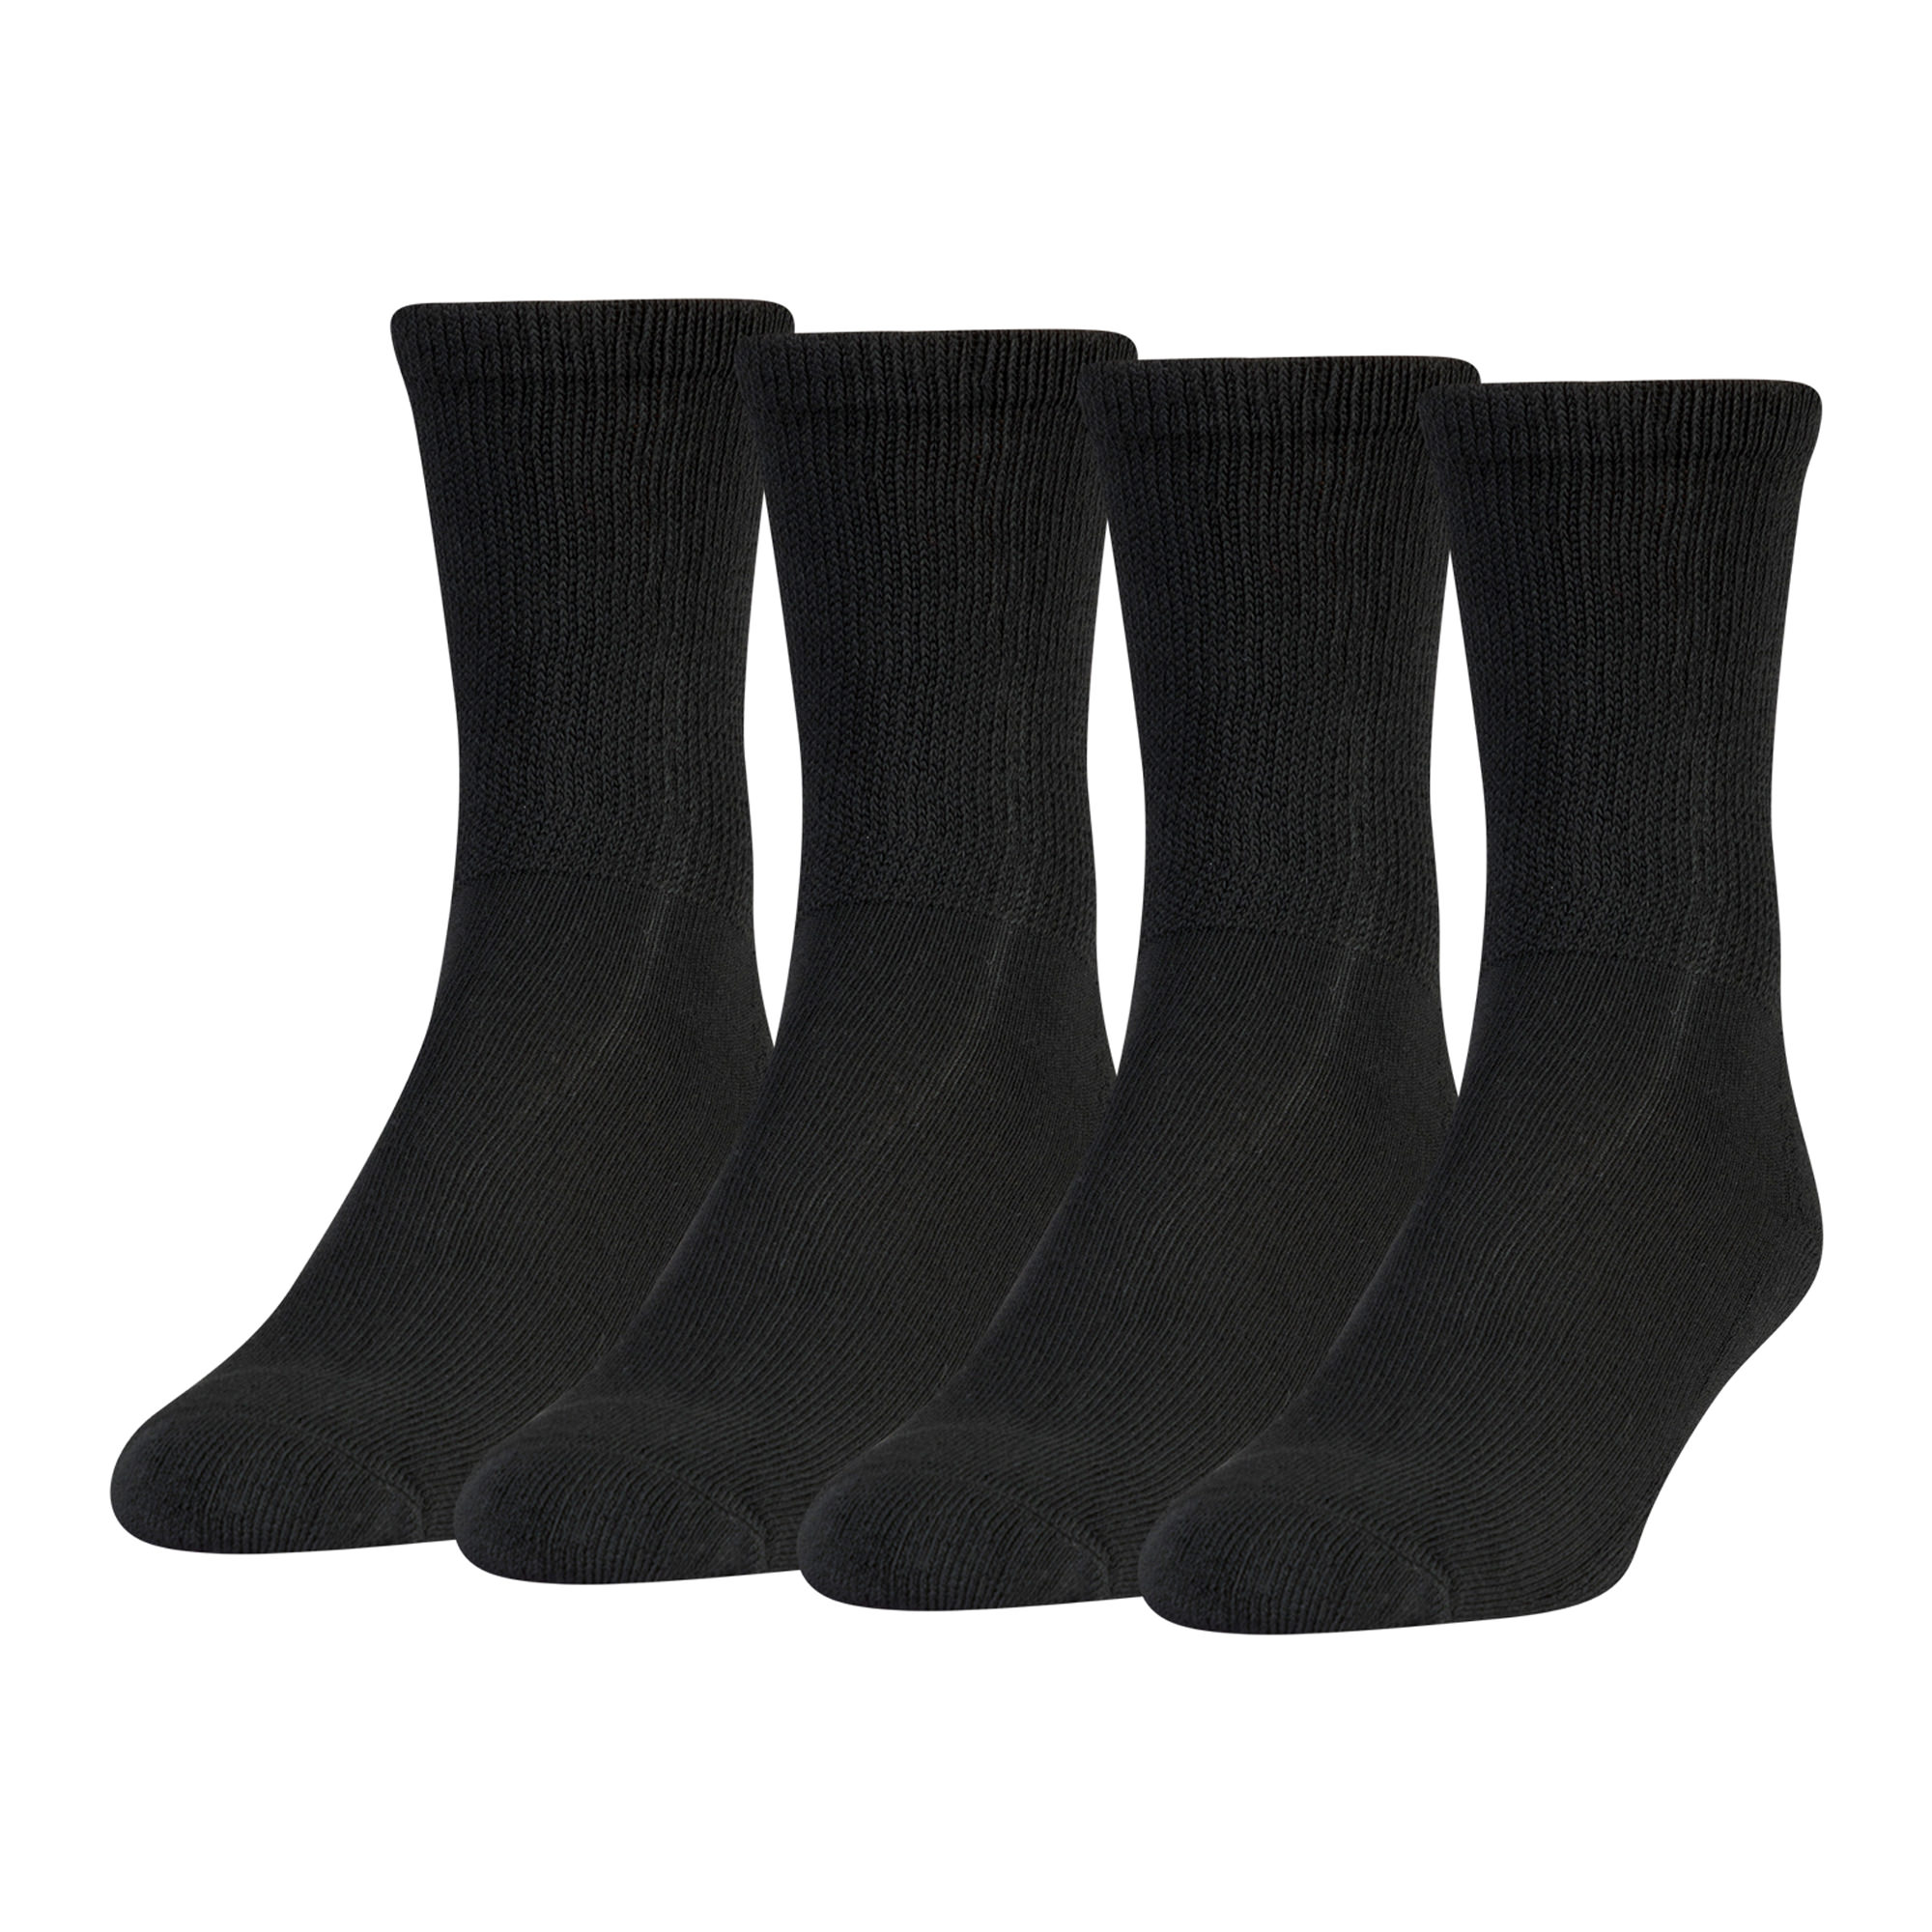 MediPEDS 8 Pair Diabetic Crew Socks with Non-Binding Top